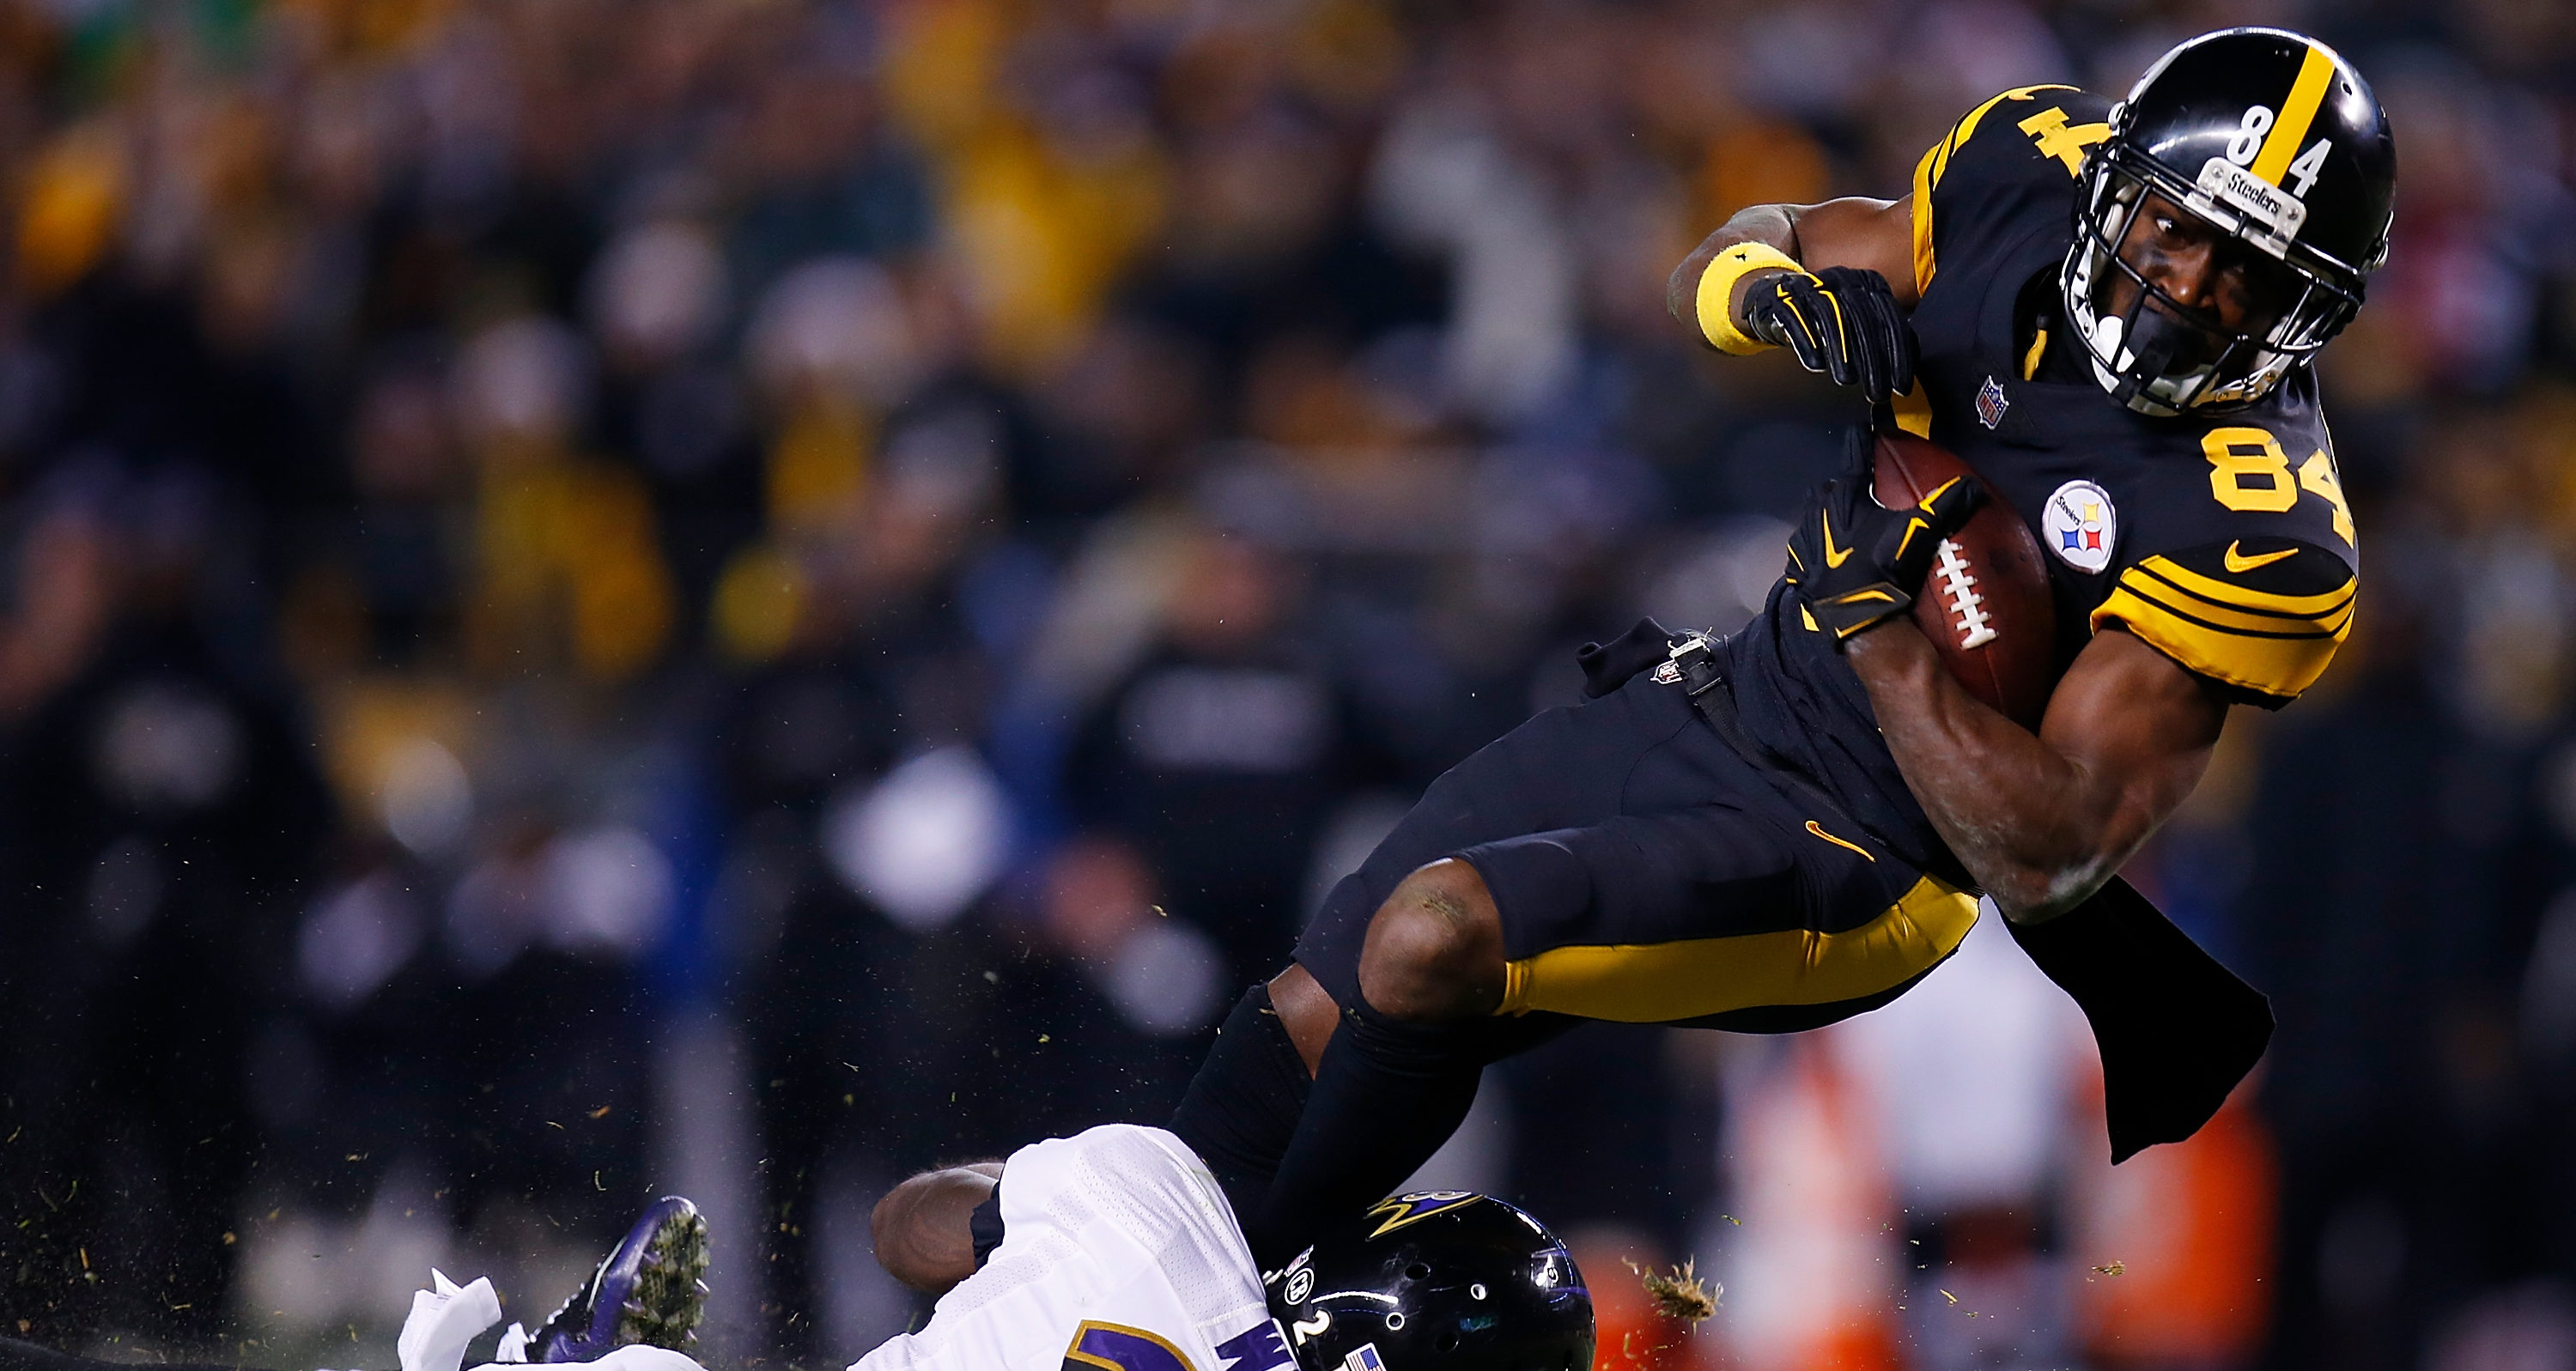 Baltimore Ravens and the Pittsburgh Steelers Heinz Field in Pennsylvania (Photo by Justin K. Aller/Getty Images)